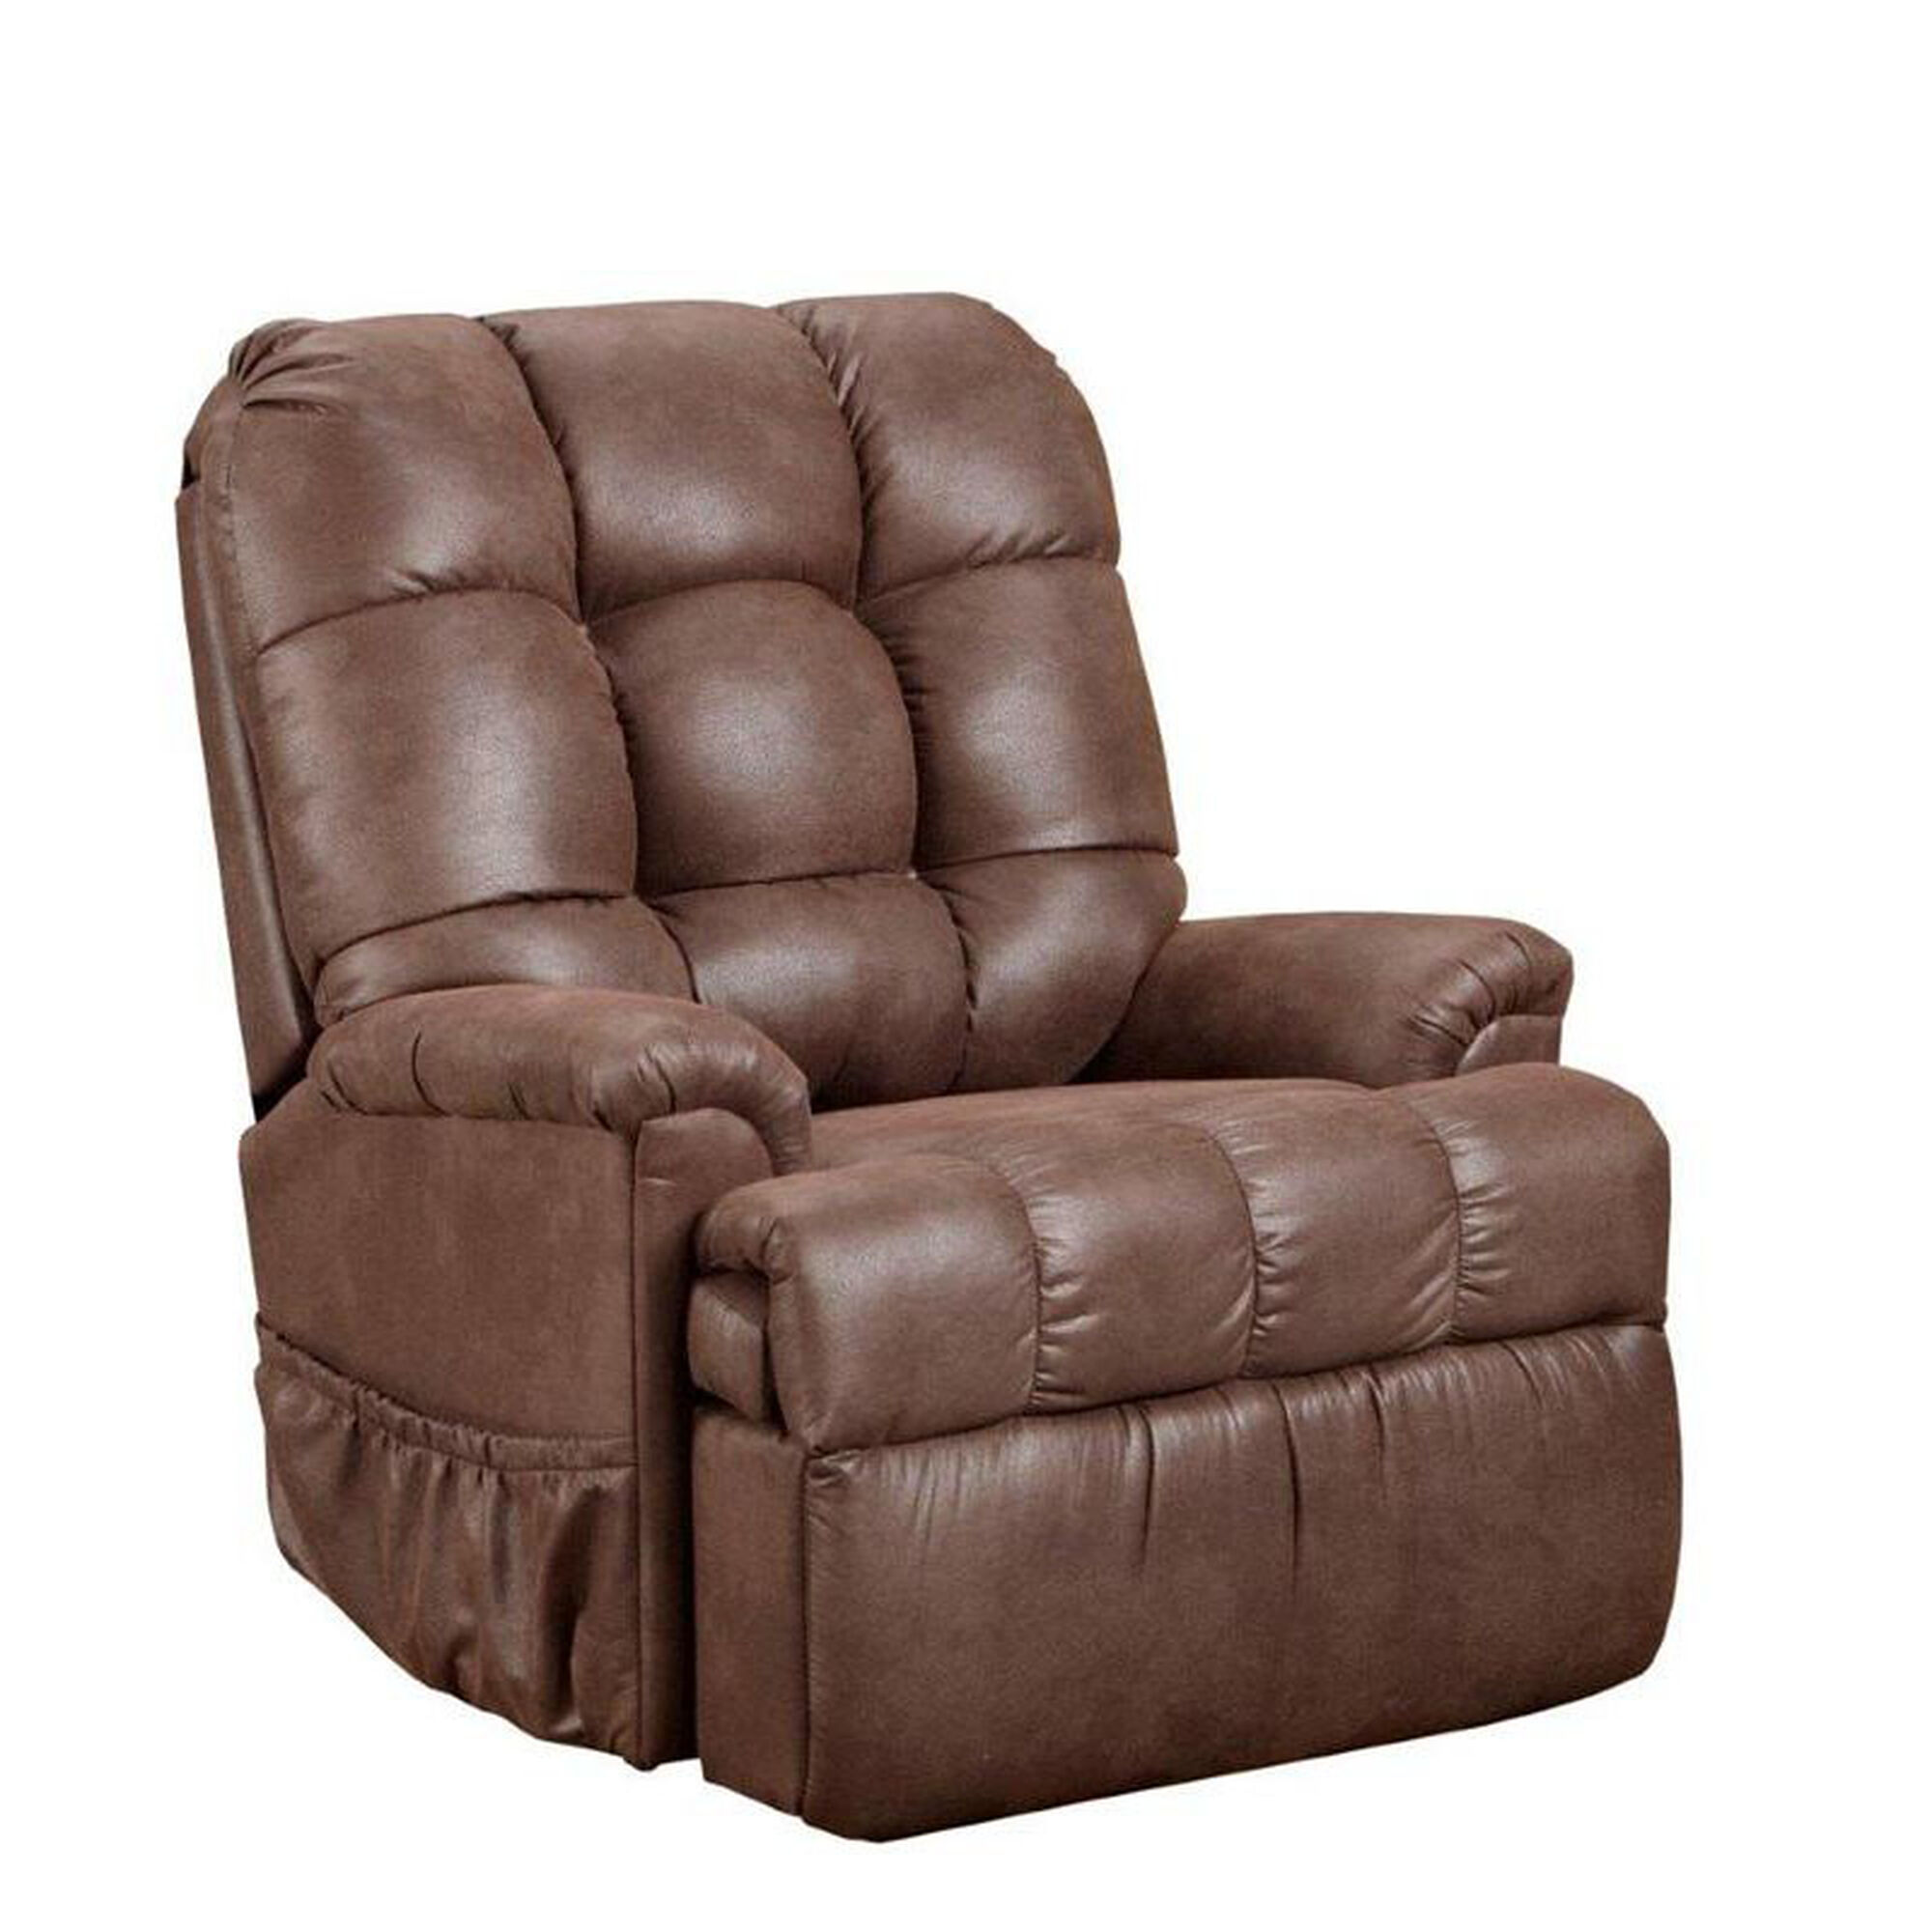 Our Reclining Sleeper Power Lift Chair With Tv Position